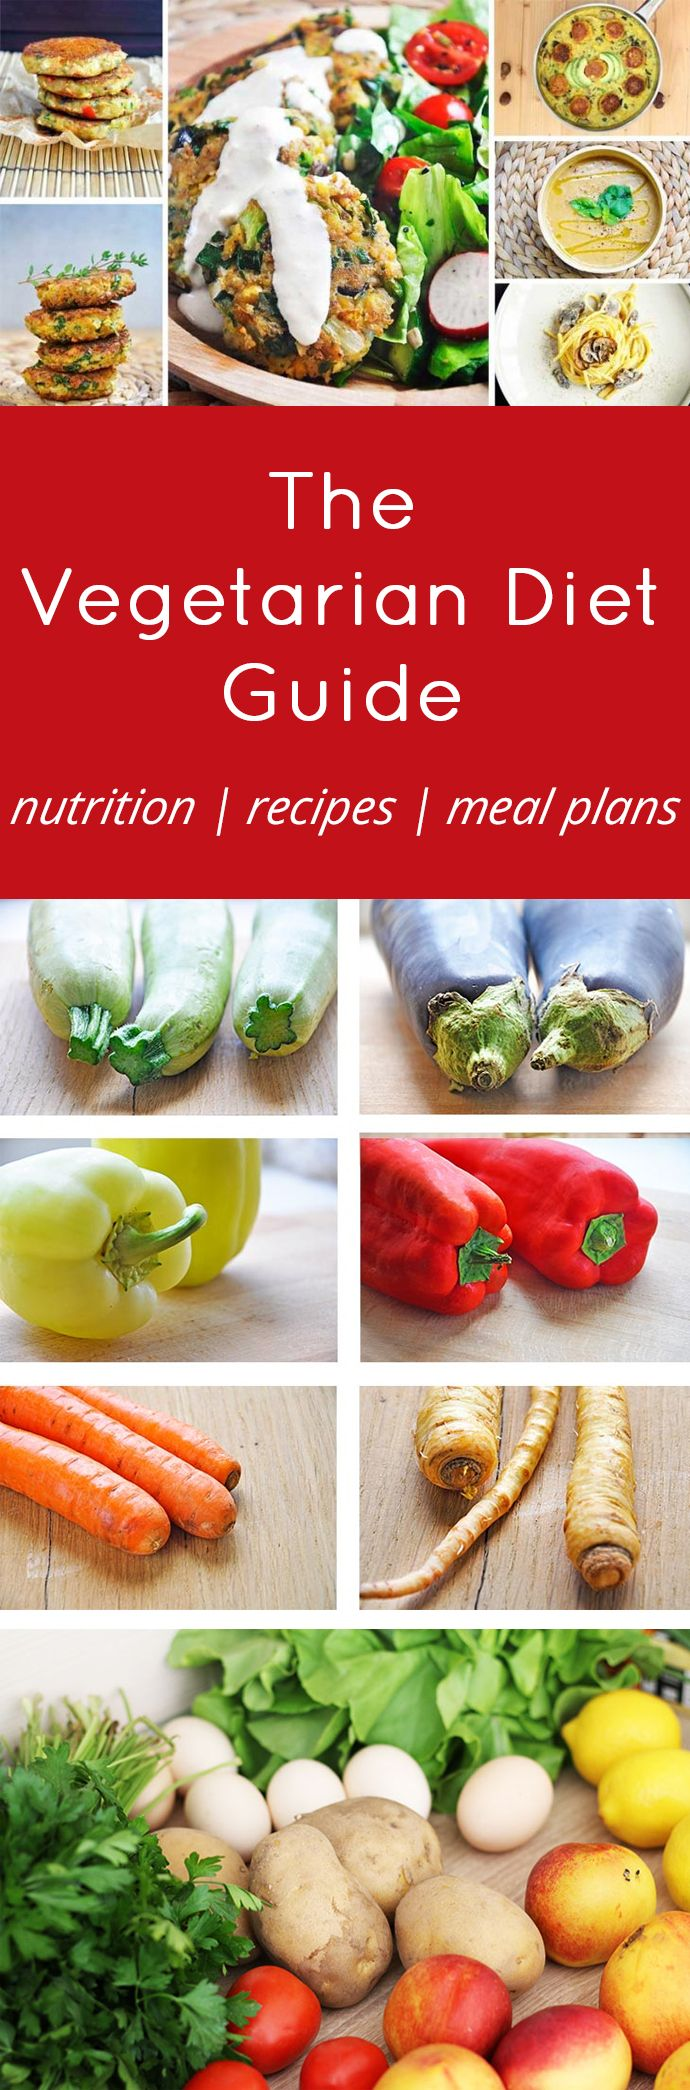 Vegetarian Diet Plan Guide - Vegetarian diets are becoming exceedingly popular these days. In this article, you will learn the basics of a vegetarian diet and what to keep in mind when you create a healthy vegetarian diet plan. https://gourmandelle.com/vegetarian-diet-plan-guide/